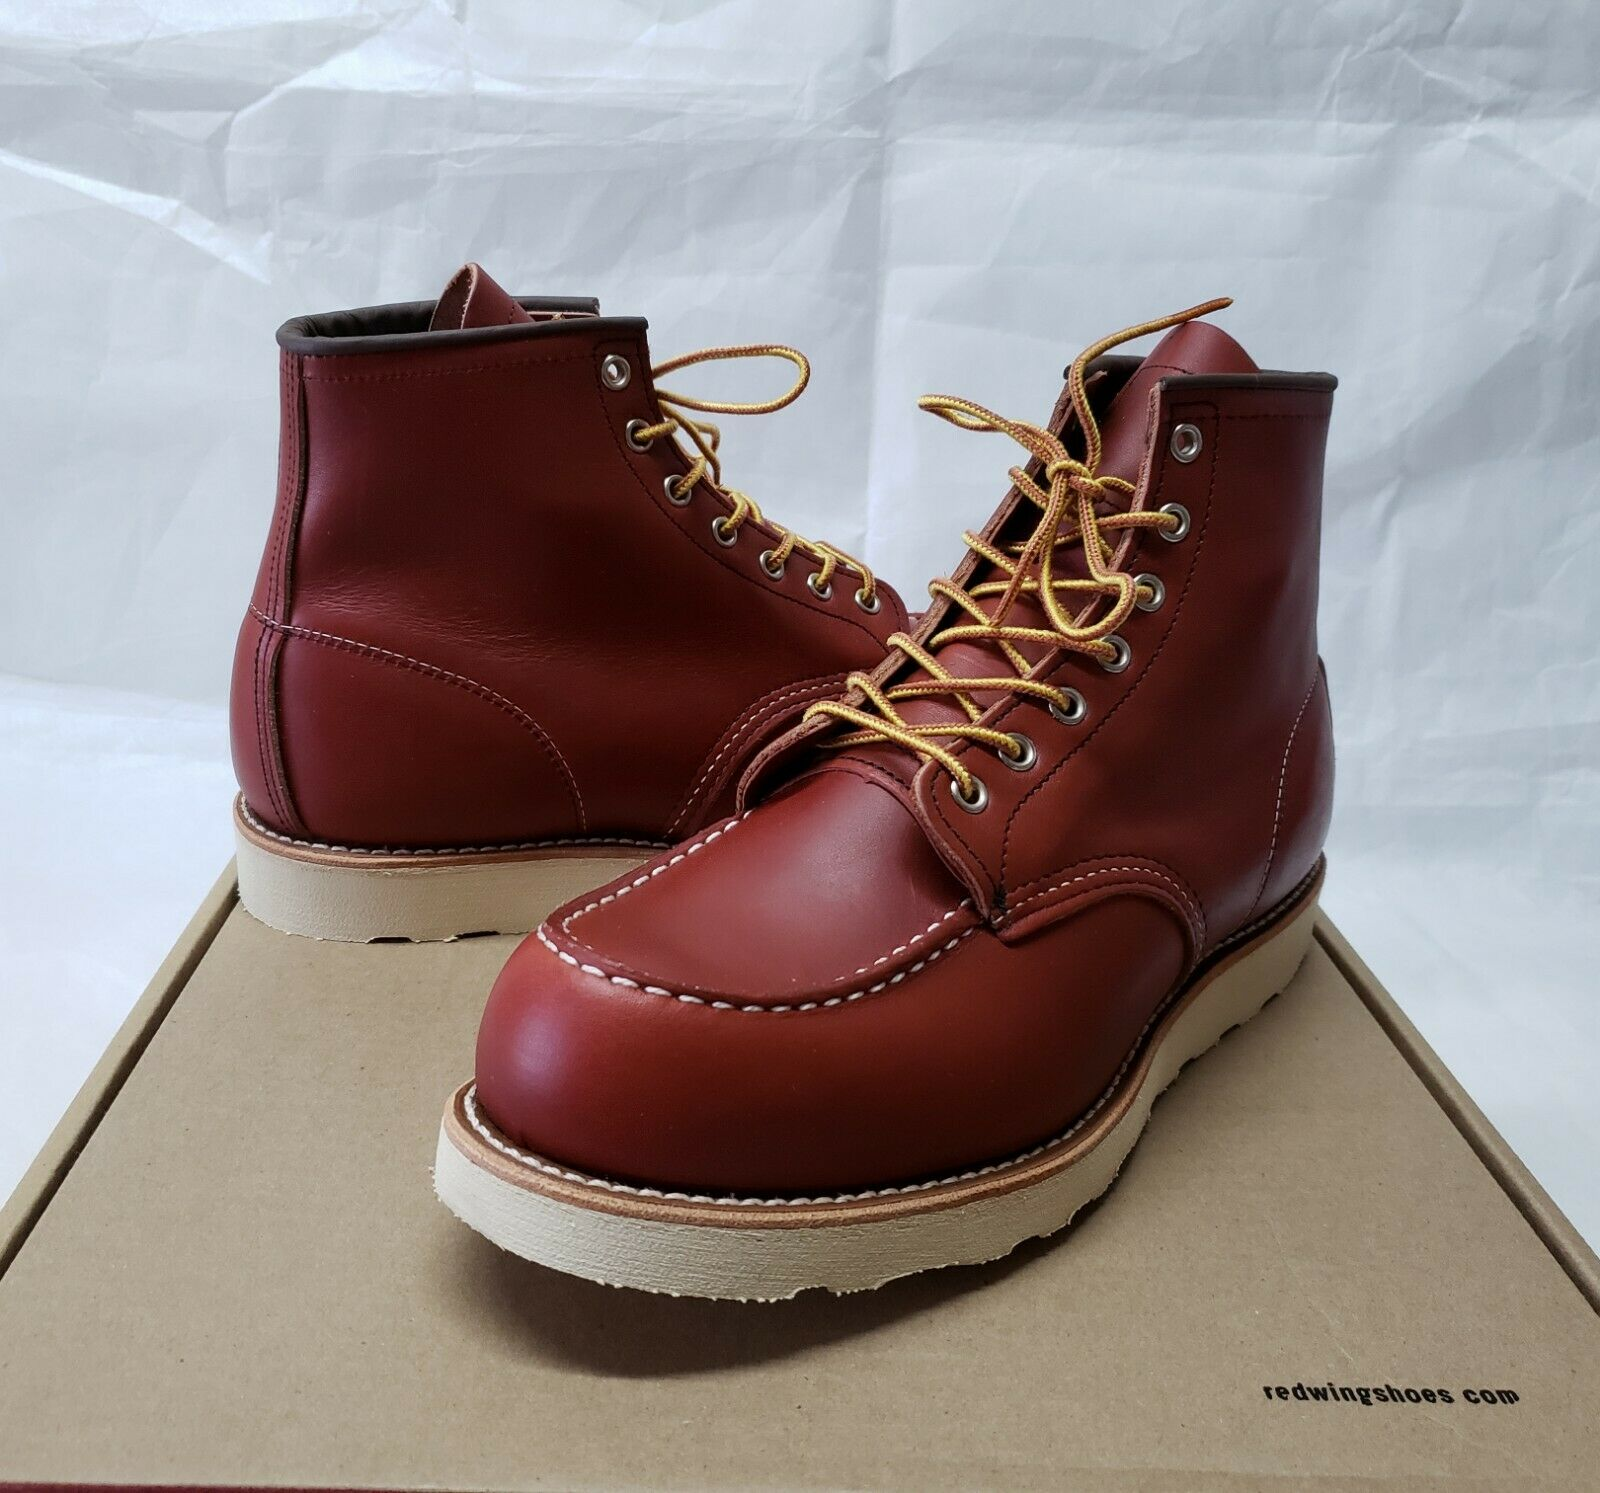 1st Quality Red Wing Moc Toe gold Russet Portage 8131 Boots 875 Iron Ranger 10.5E